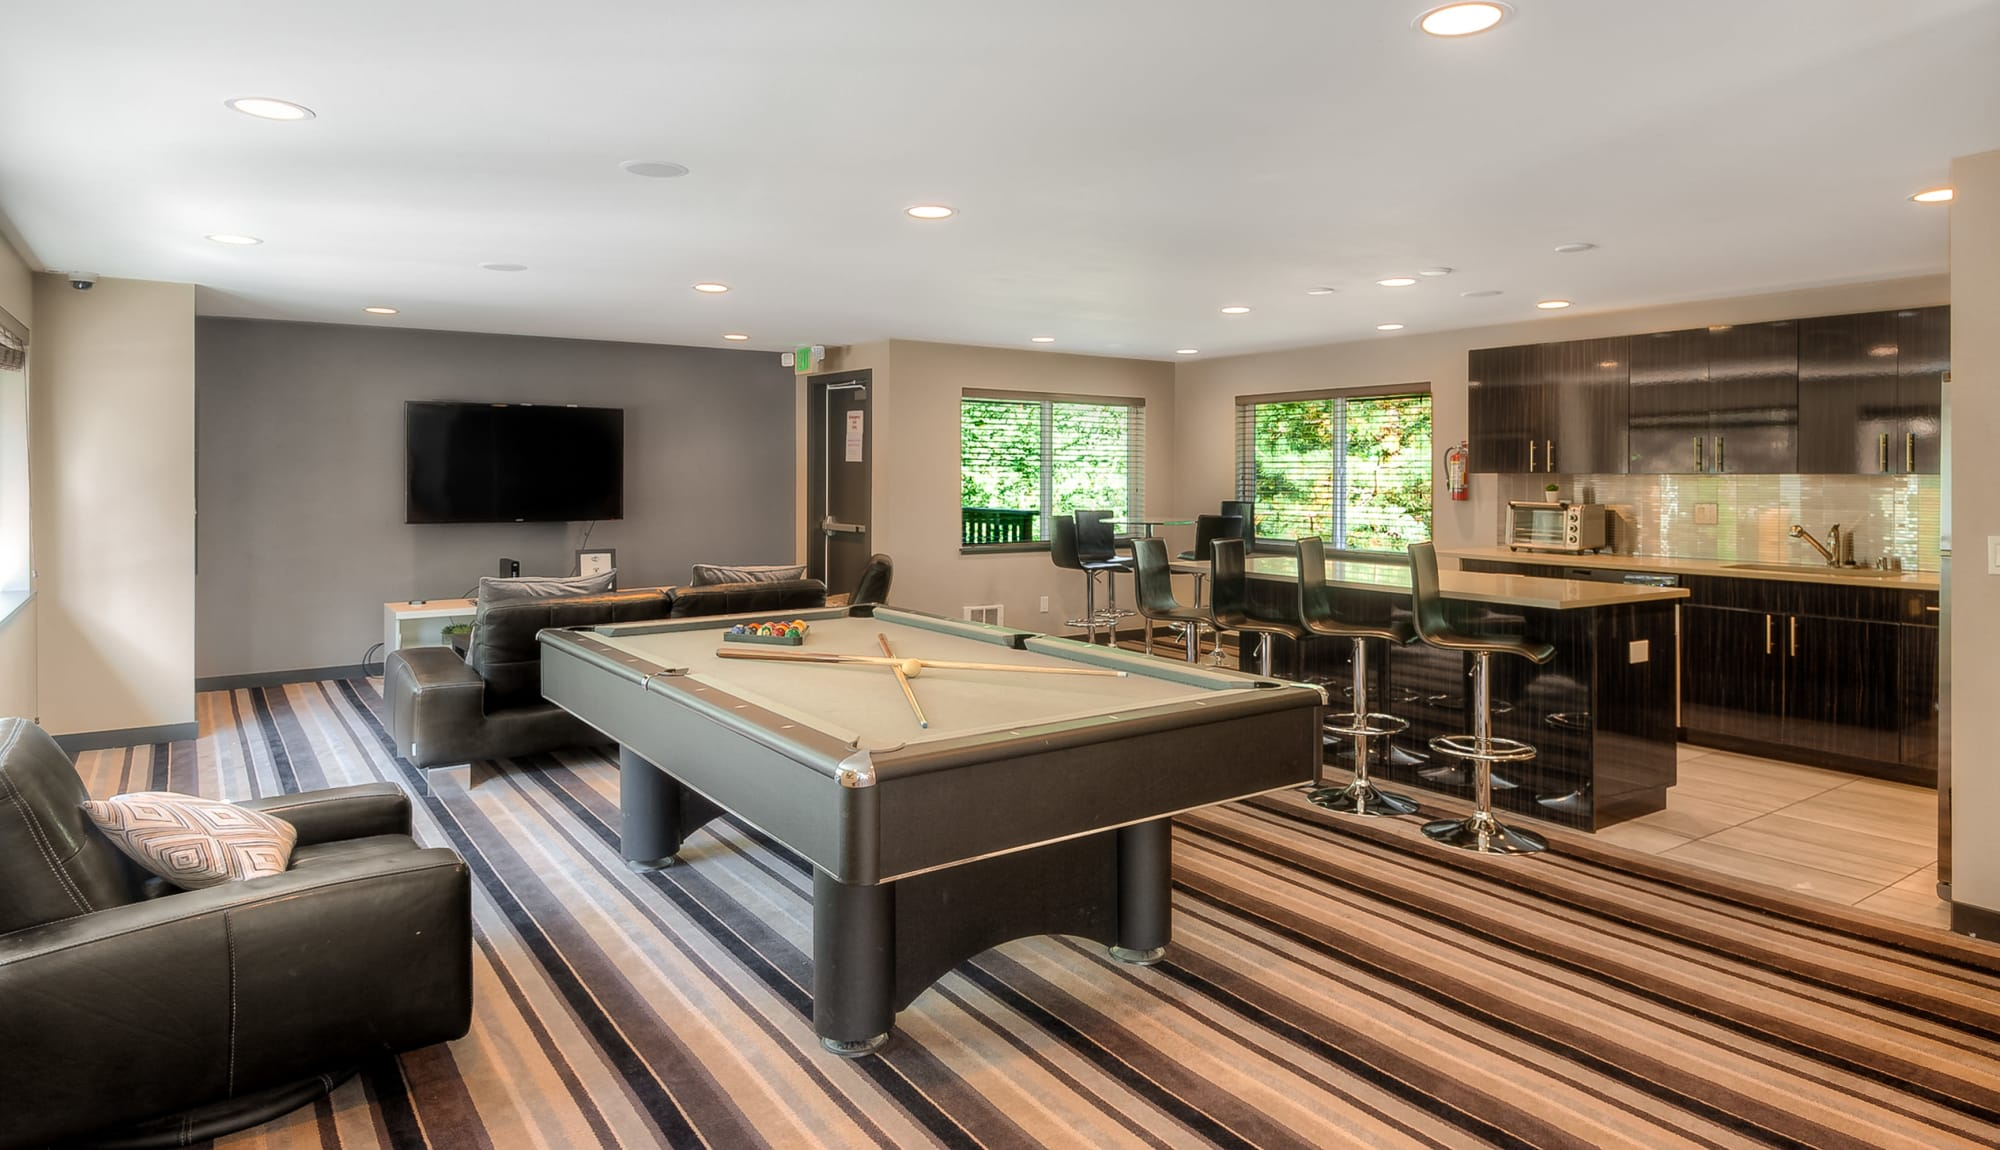 Game room lounge, pool table, common area kitchen in Newcastle, WA